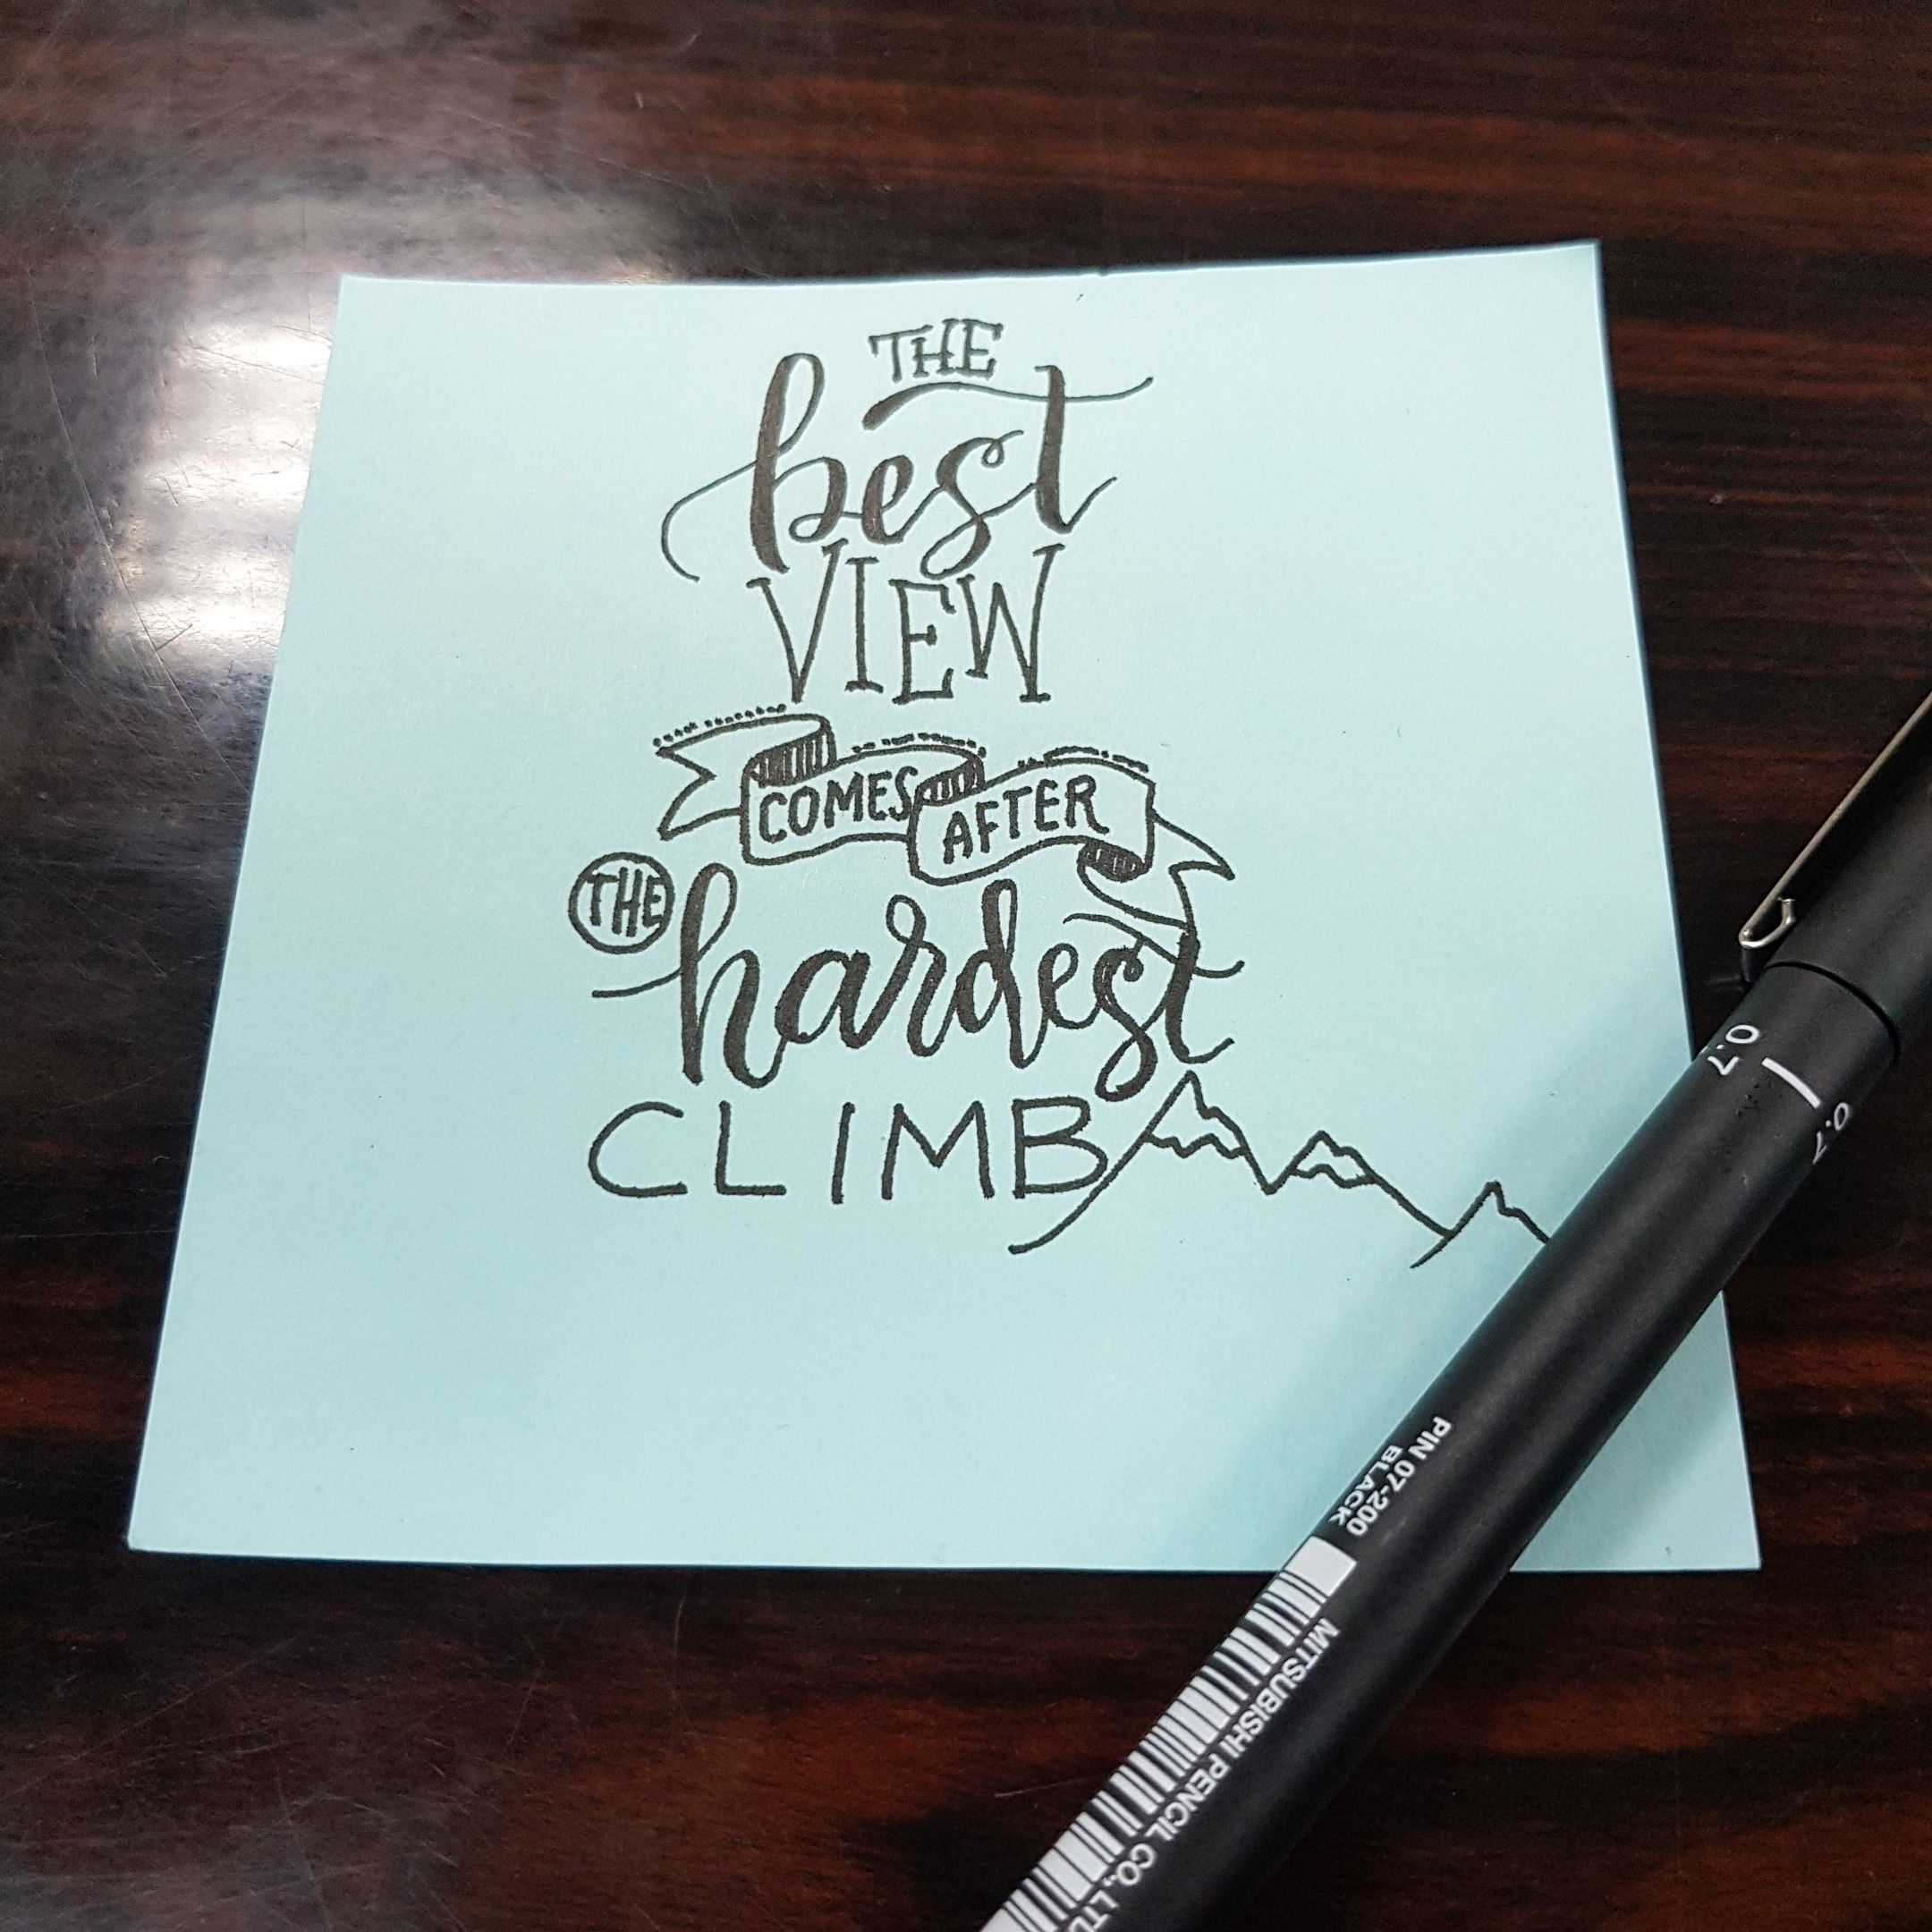 [Image] I've been so stressed at work lately so I wrote this as a reminder that nothing worthwhile is ever easy